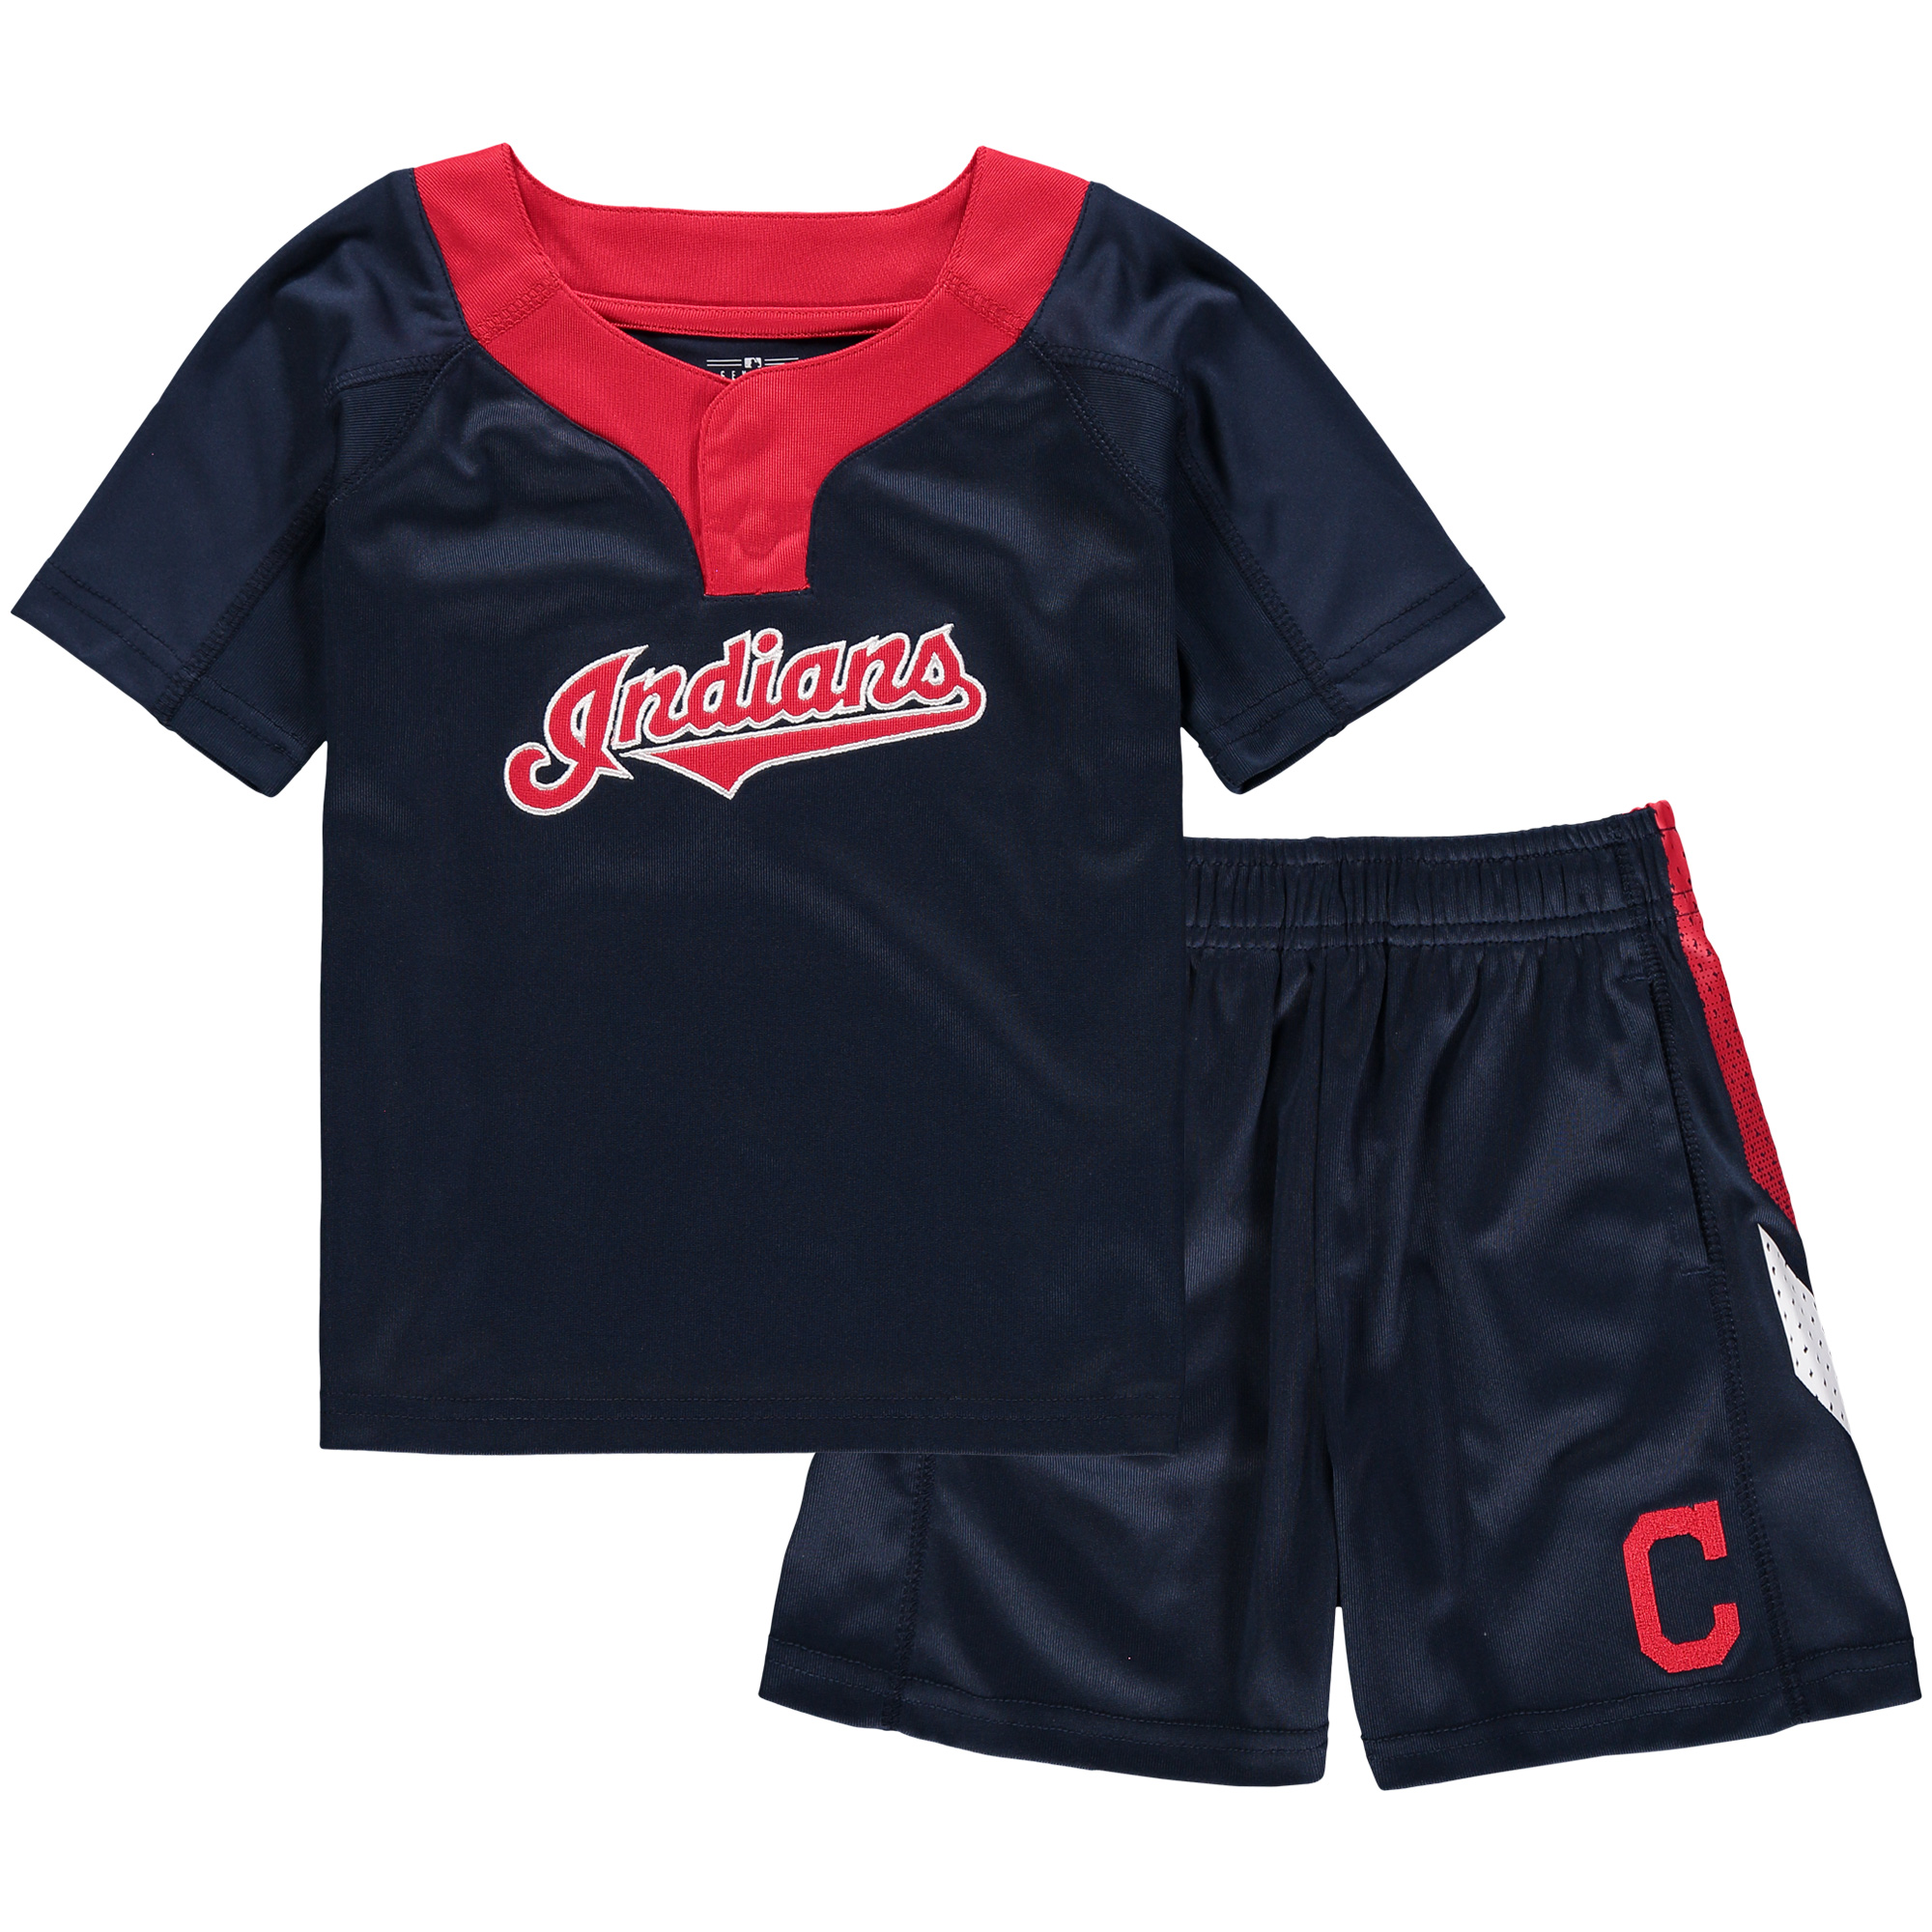 Cleveland Indians Toddler Ground Rules T-Shirt & Shorts Set - Navy/Red